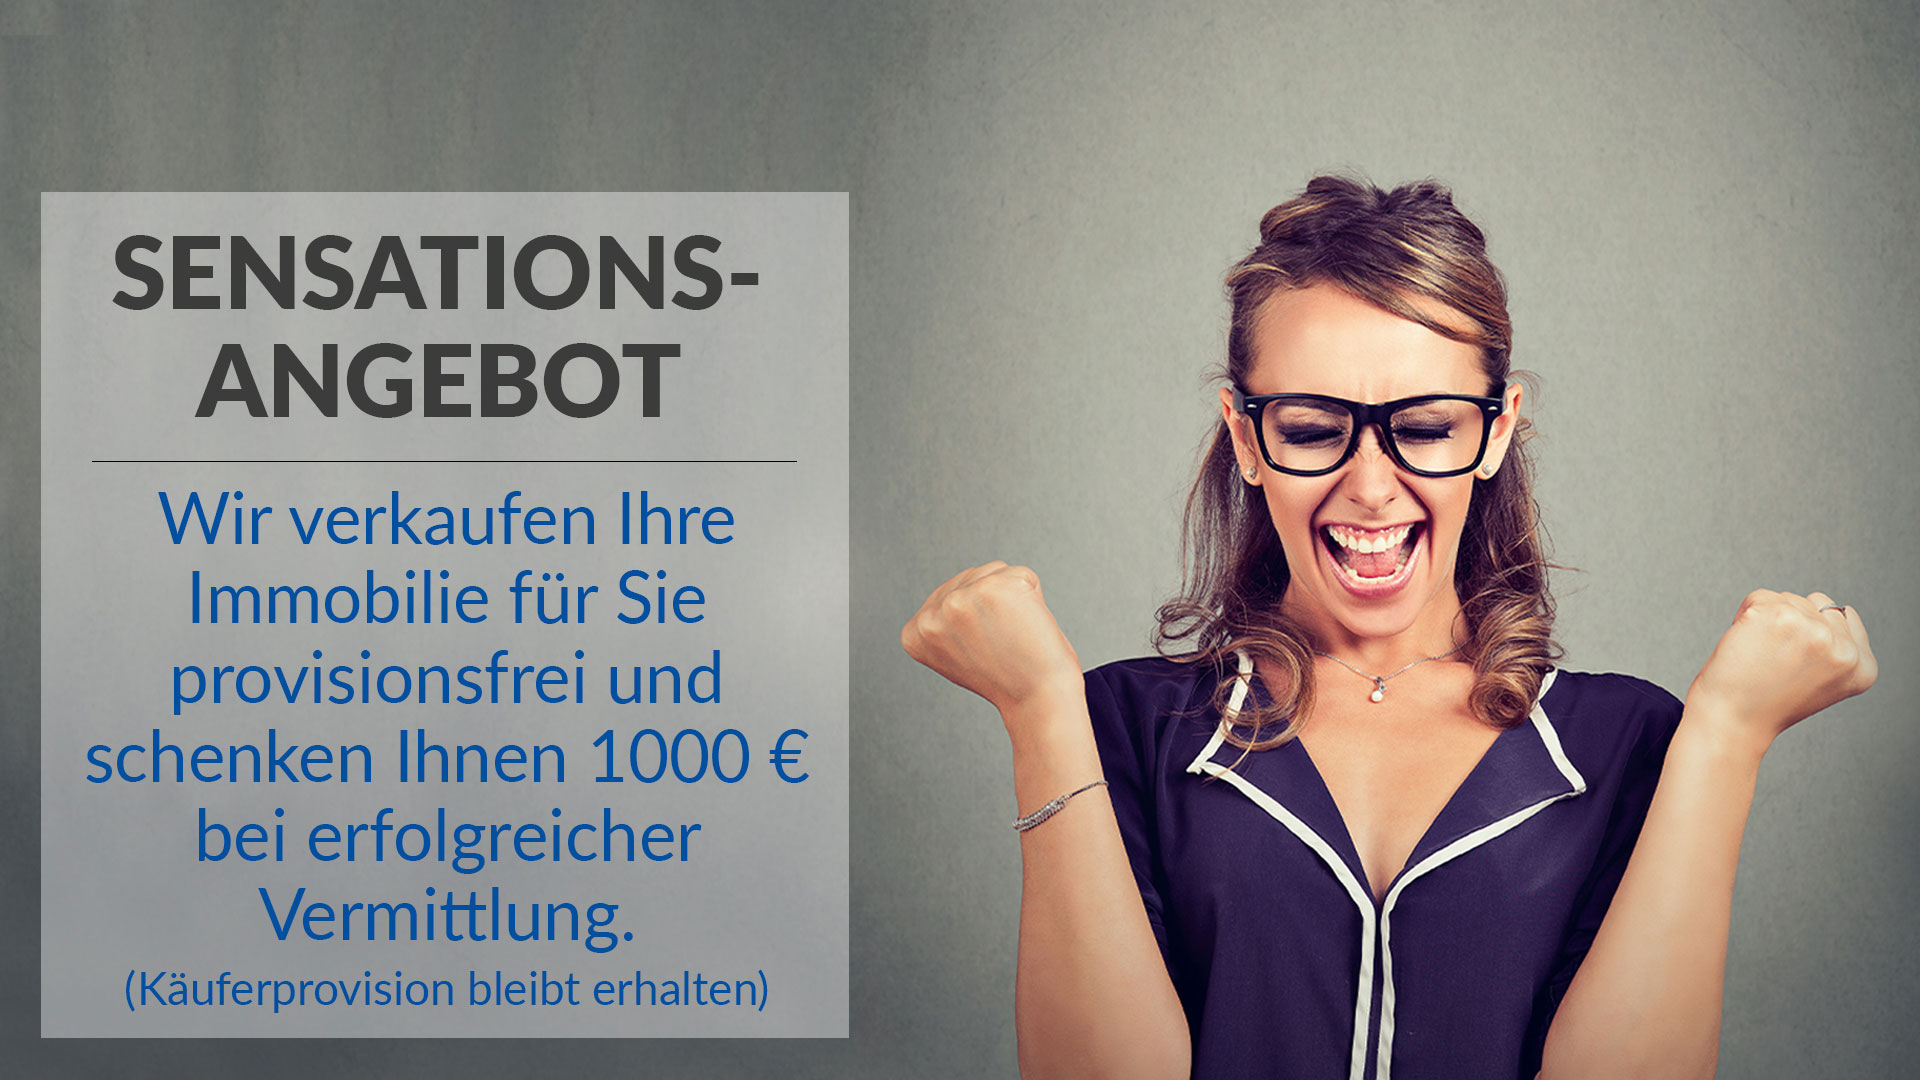 Sensations-Angebot Immobilienzentrum